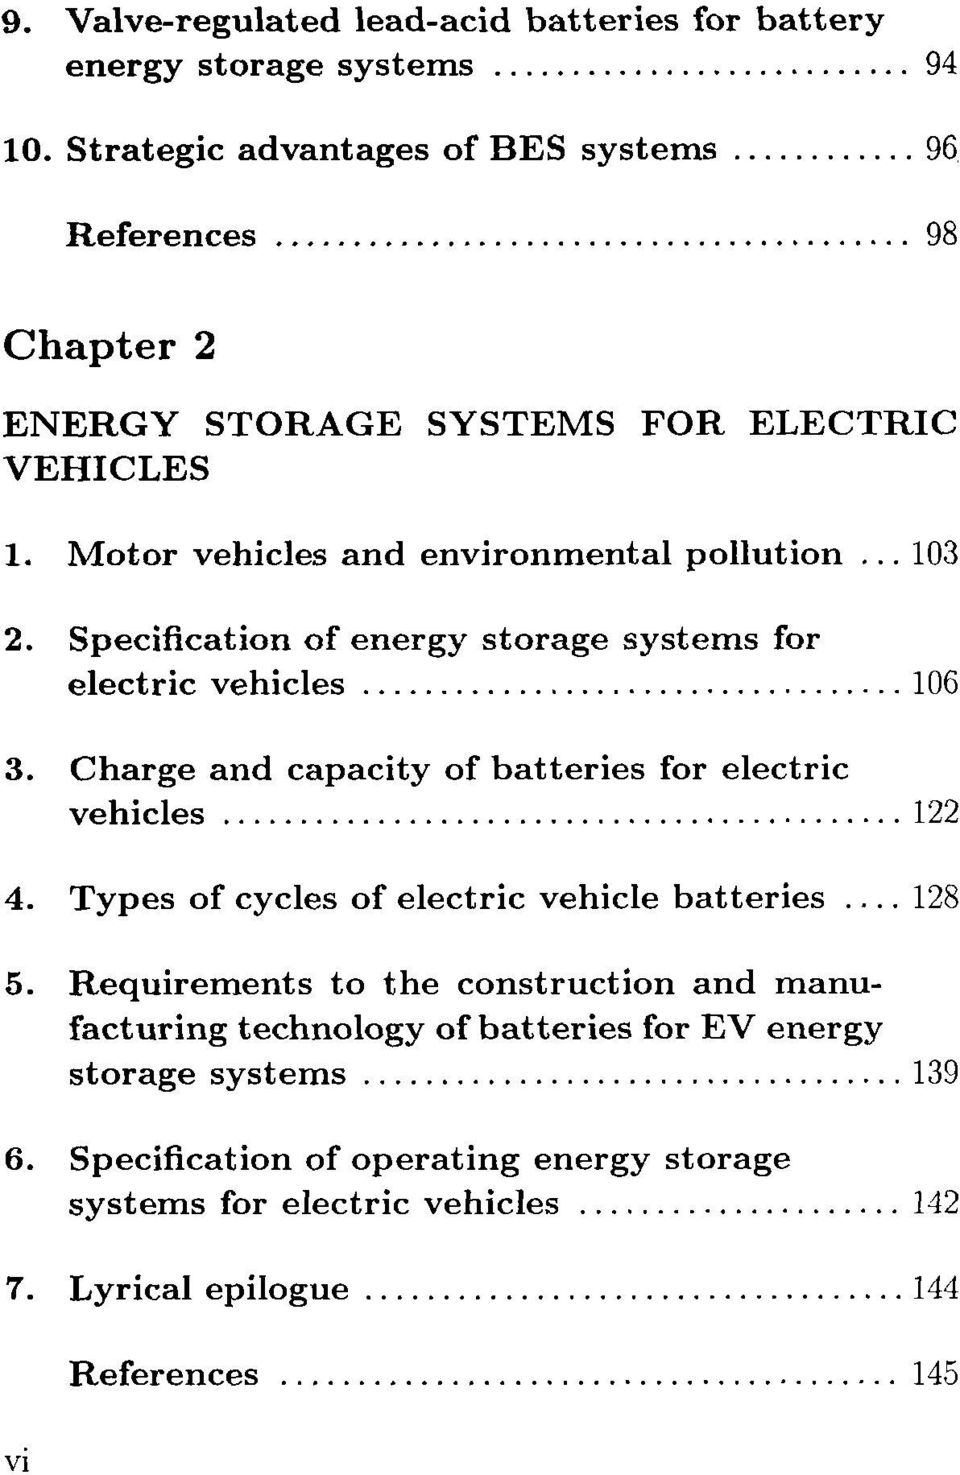 .. 103 Specification of energy storage systems for electric vehicles................................... 106 3. 4. 5. Charge and capacity of batteries for electric vehicles.